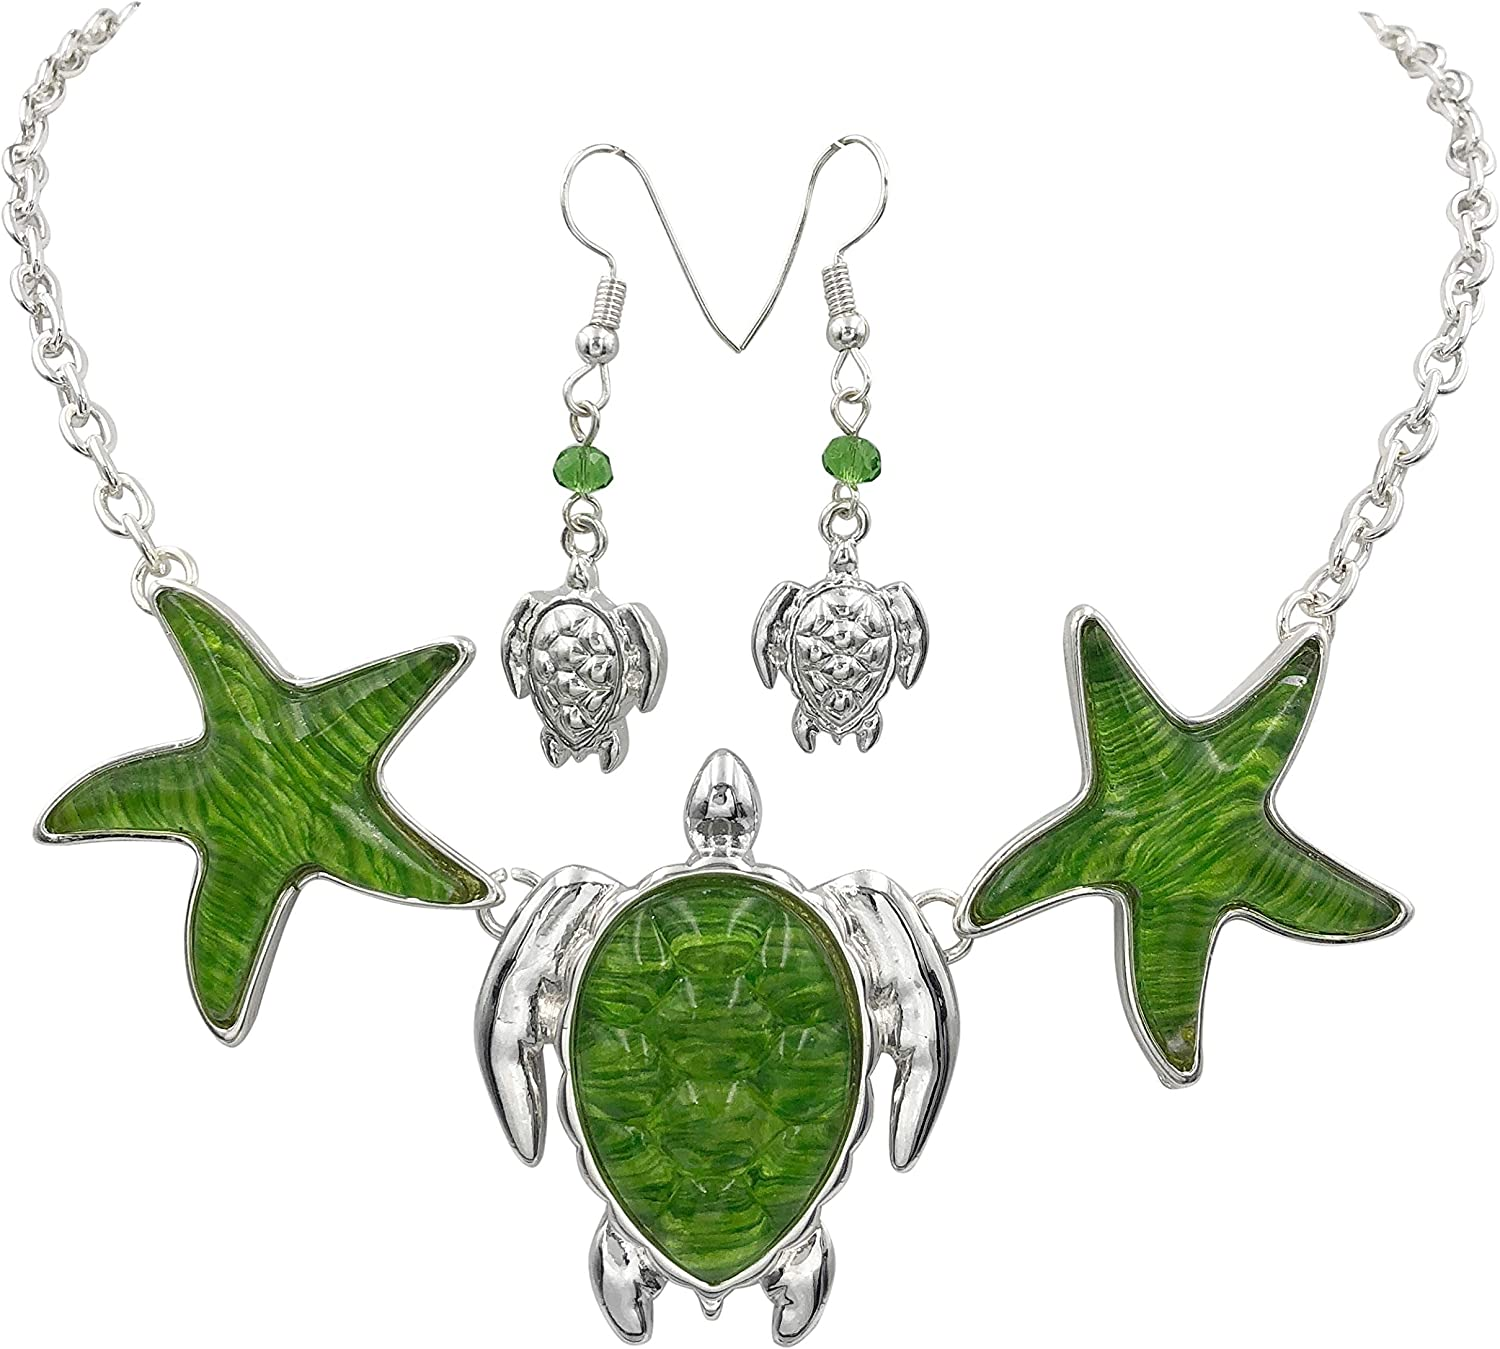 Gypsy Jewels Nautical Boutique Style Statement Necklace & Earrings Set